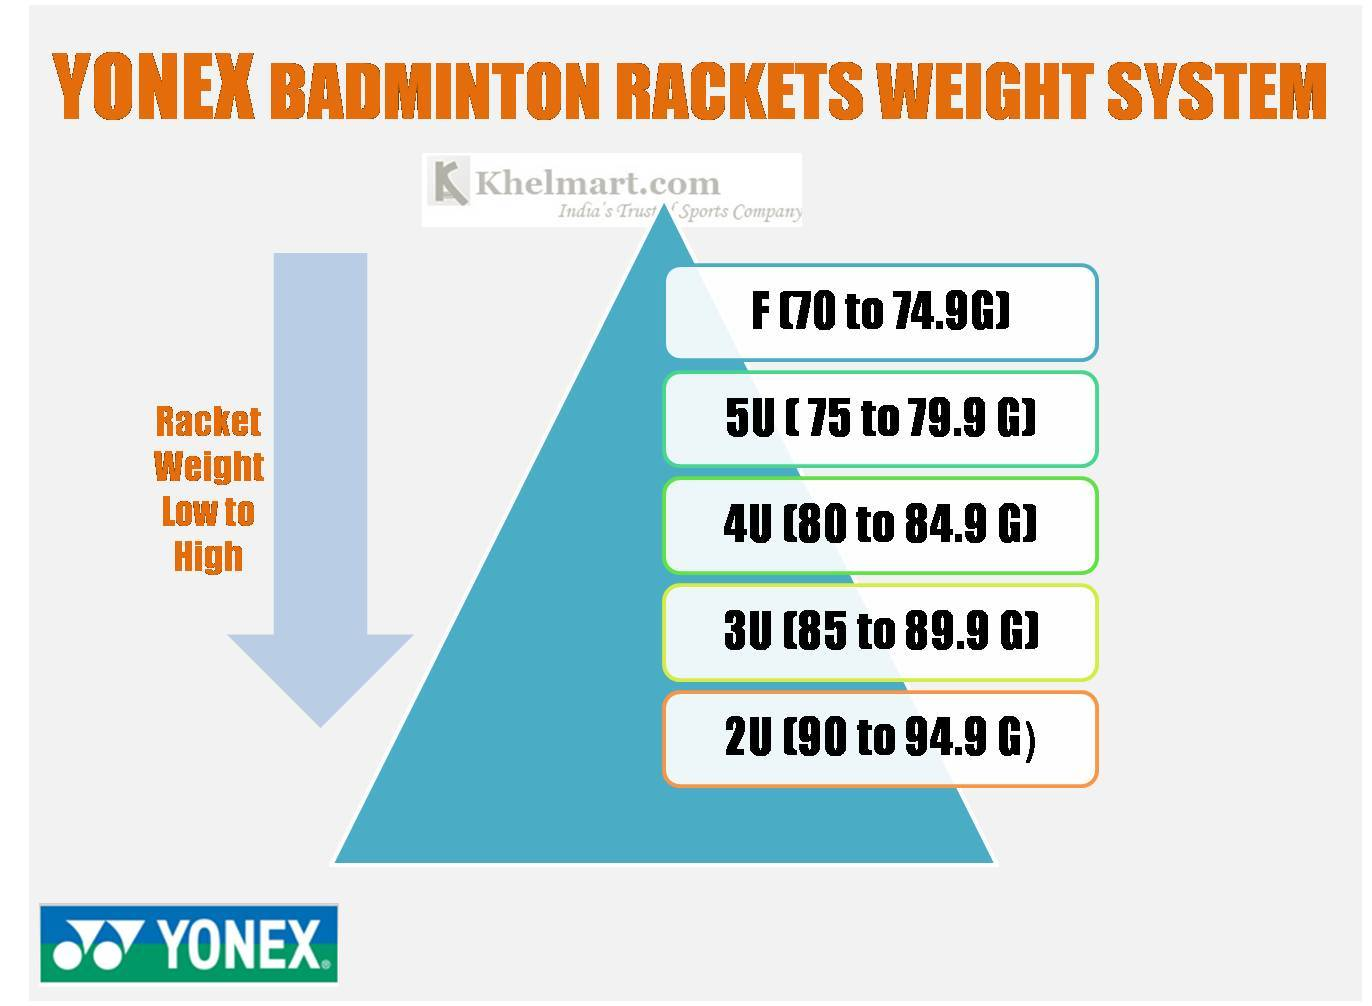 Yonex_Badminton_racket_Weight_Standard_Khelmart